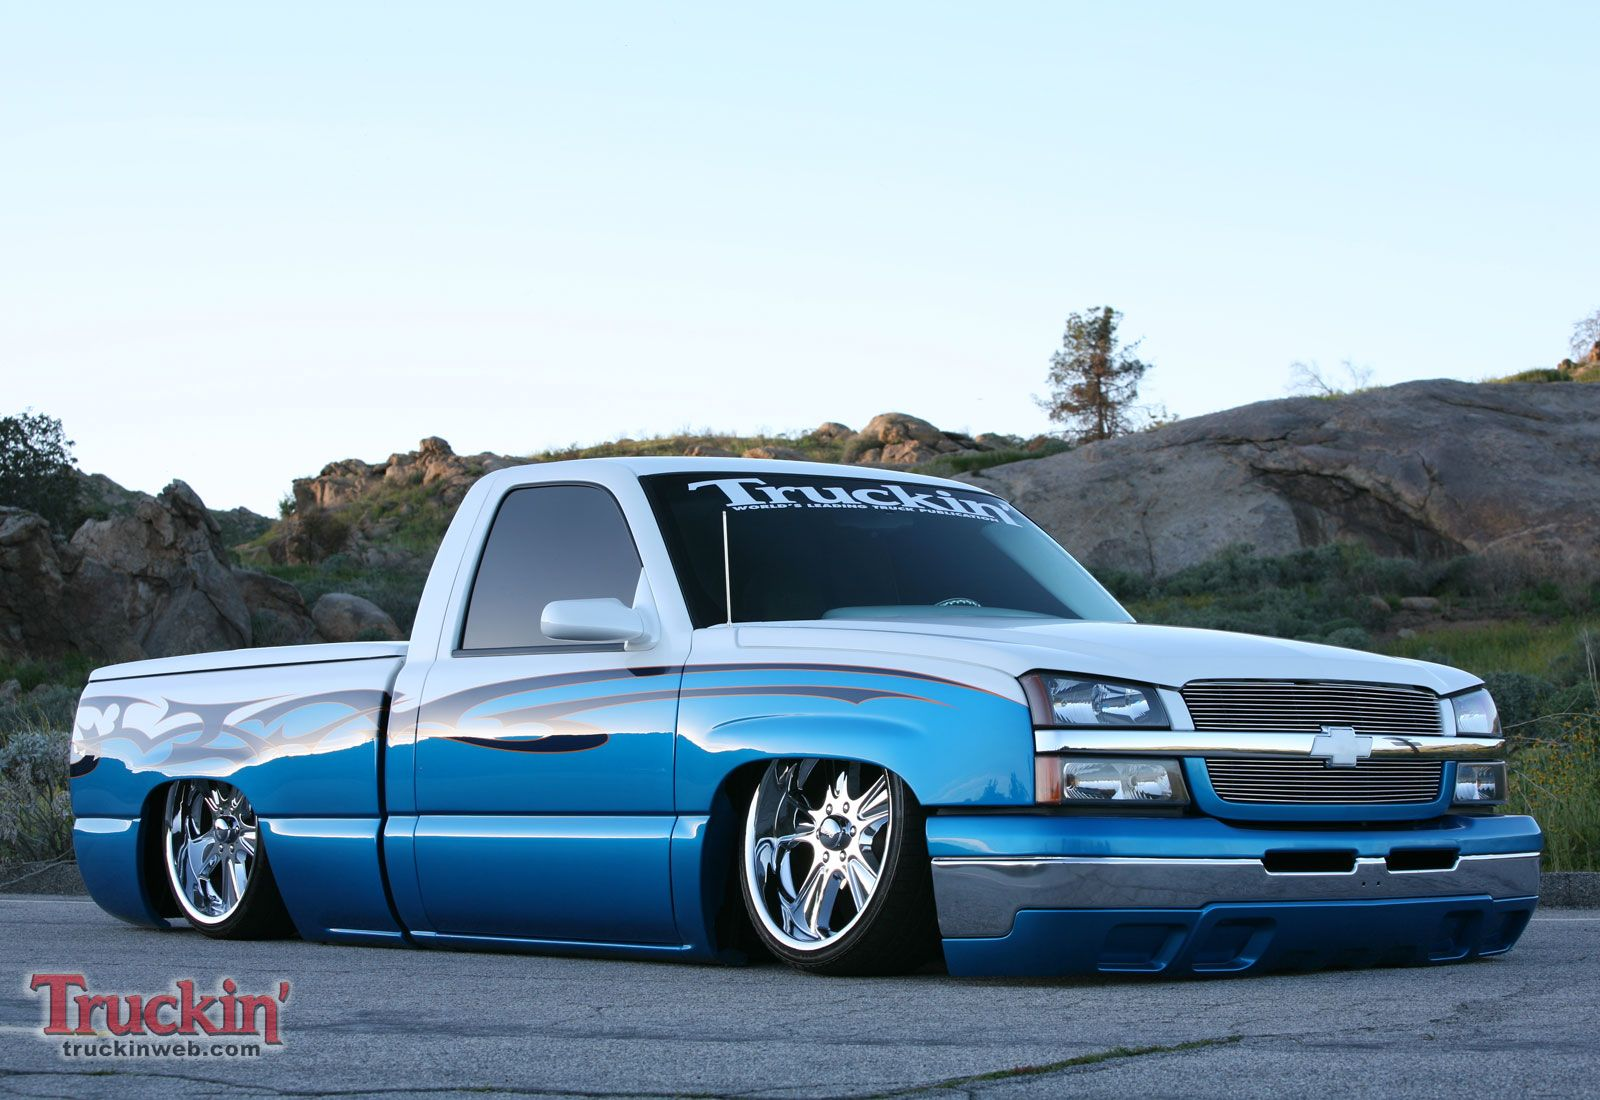 2003 blue low rider chevrolet silverado truck